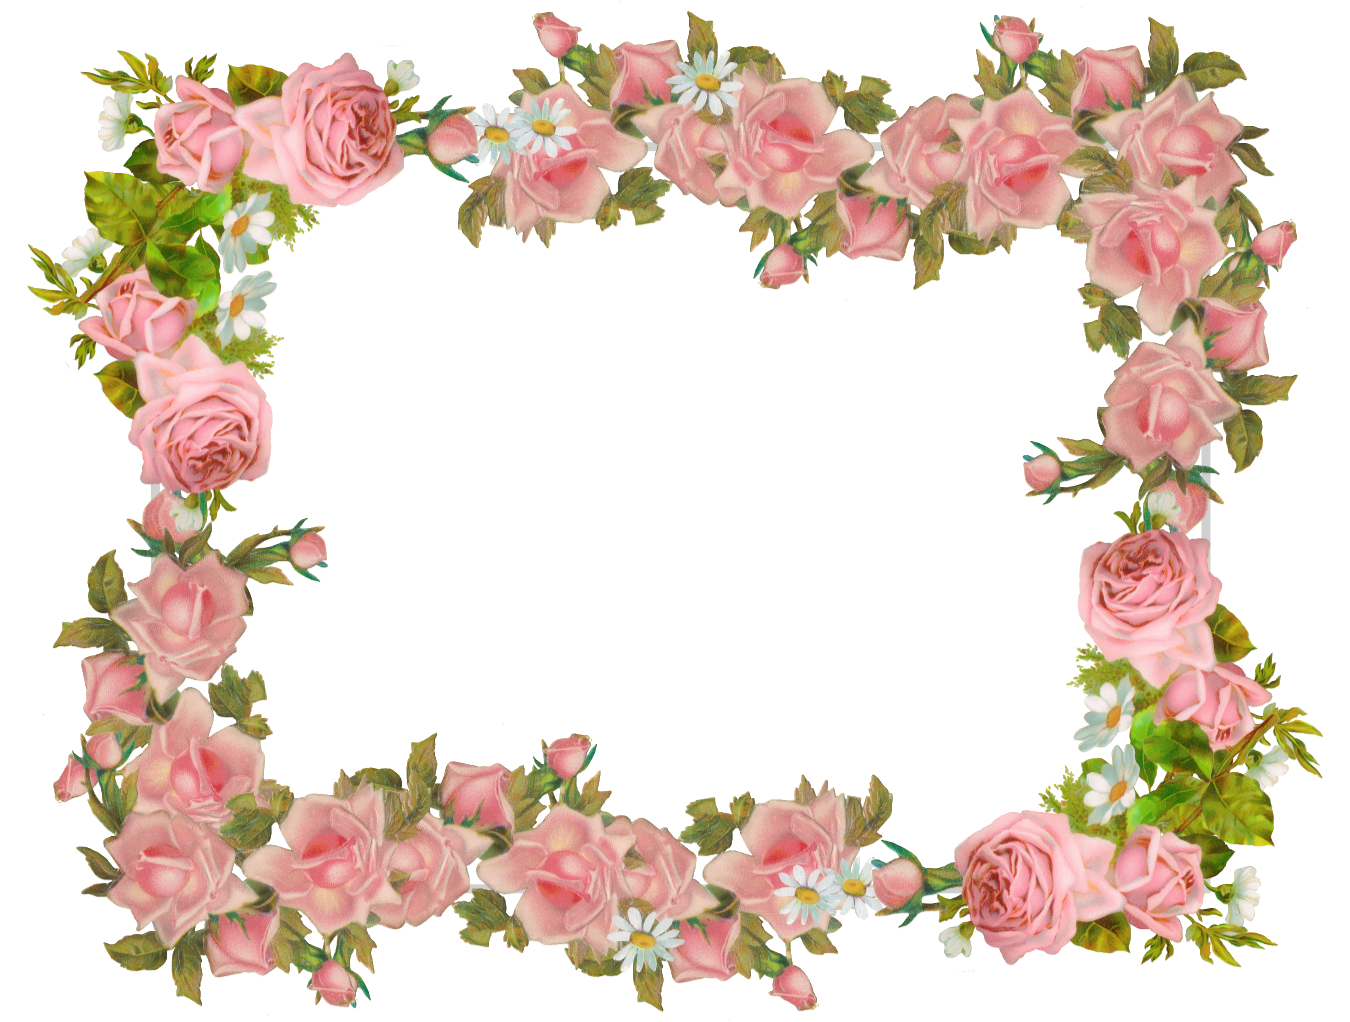 Flower arch clipart graphic library library Free digital vintage rose frame and scrapbooking paper - Rosenrahmen ... graphic library library